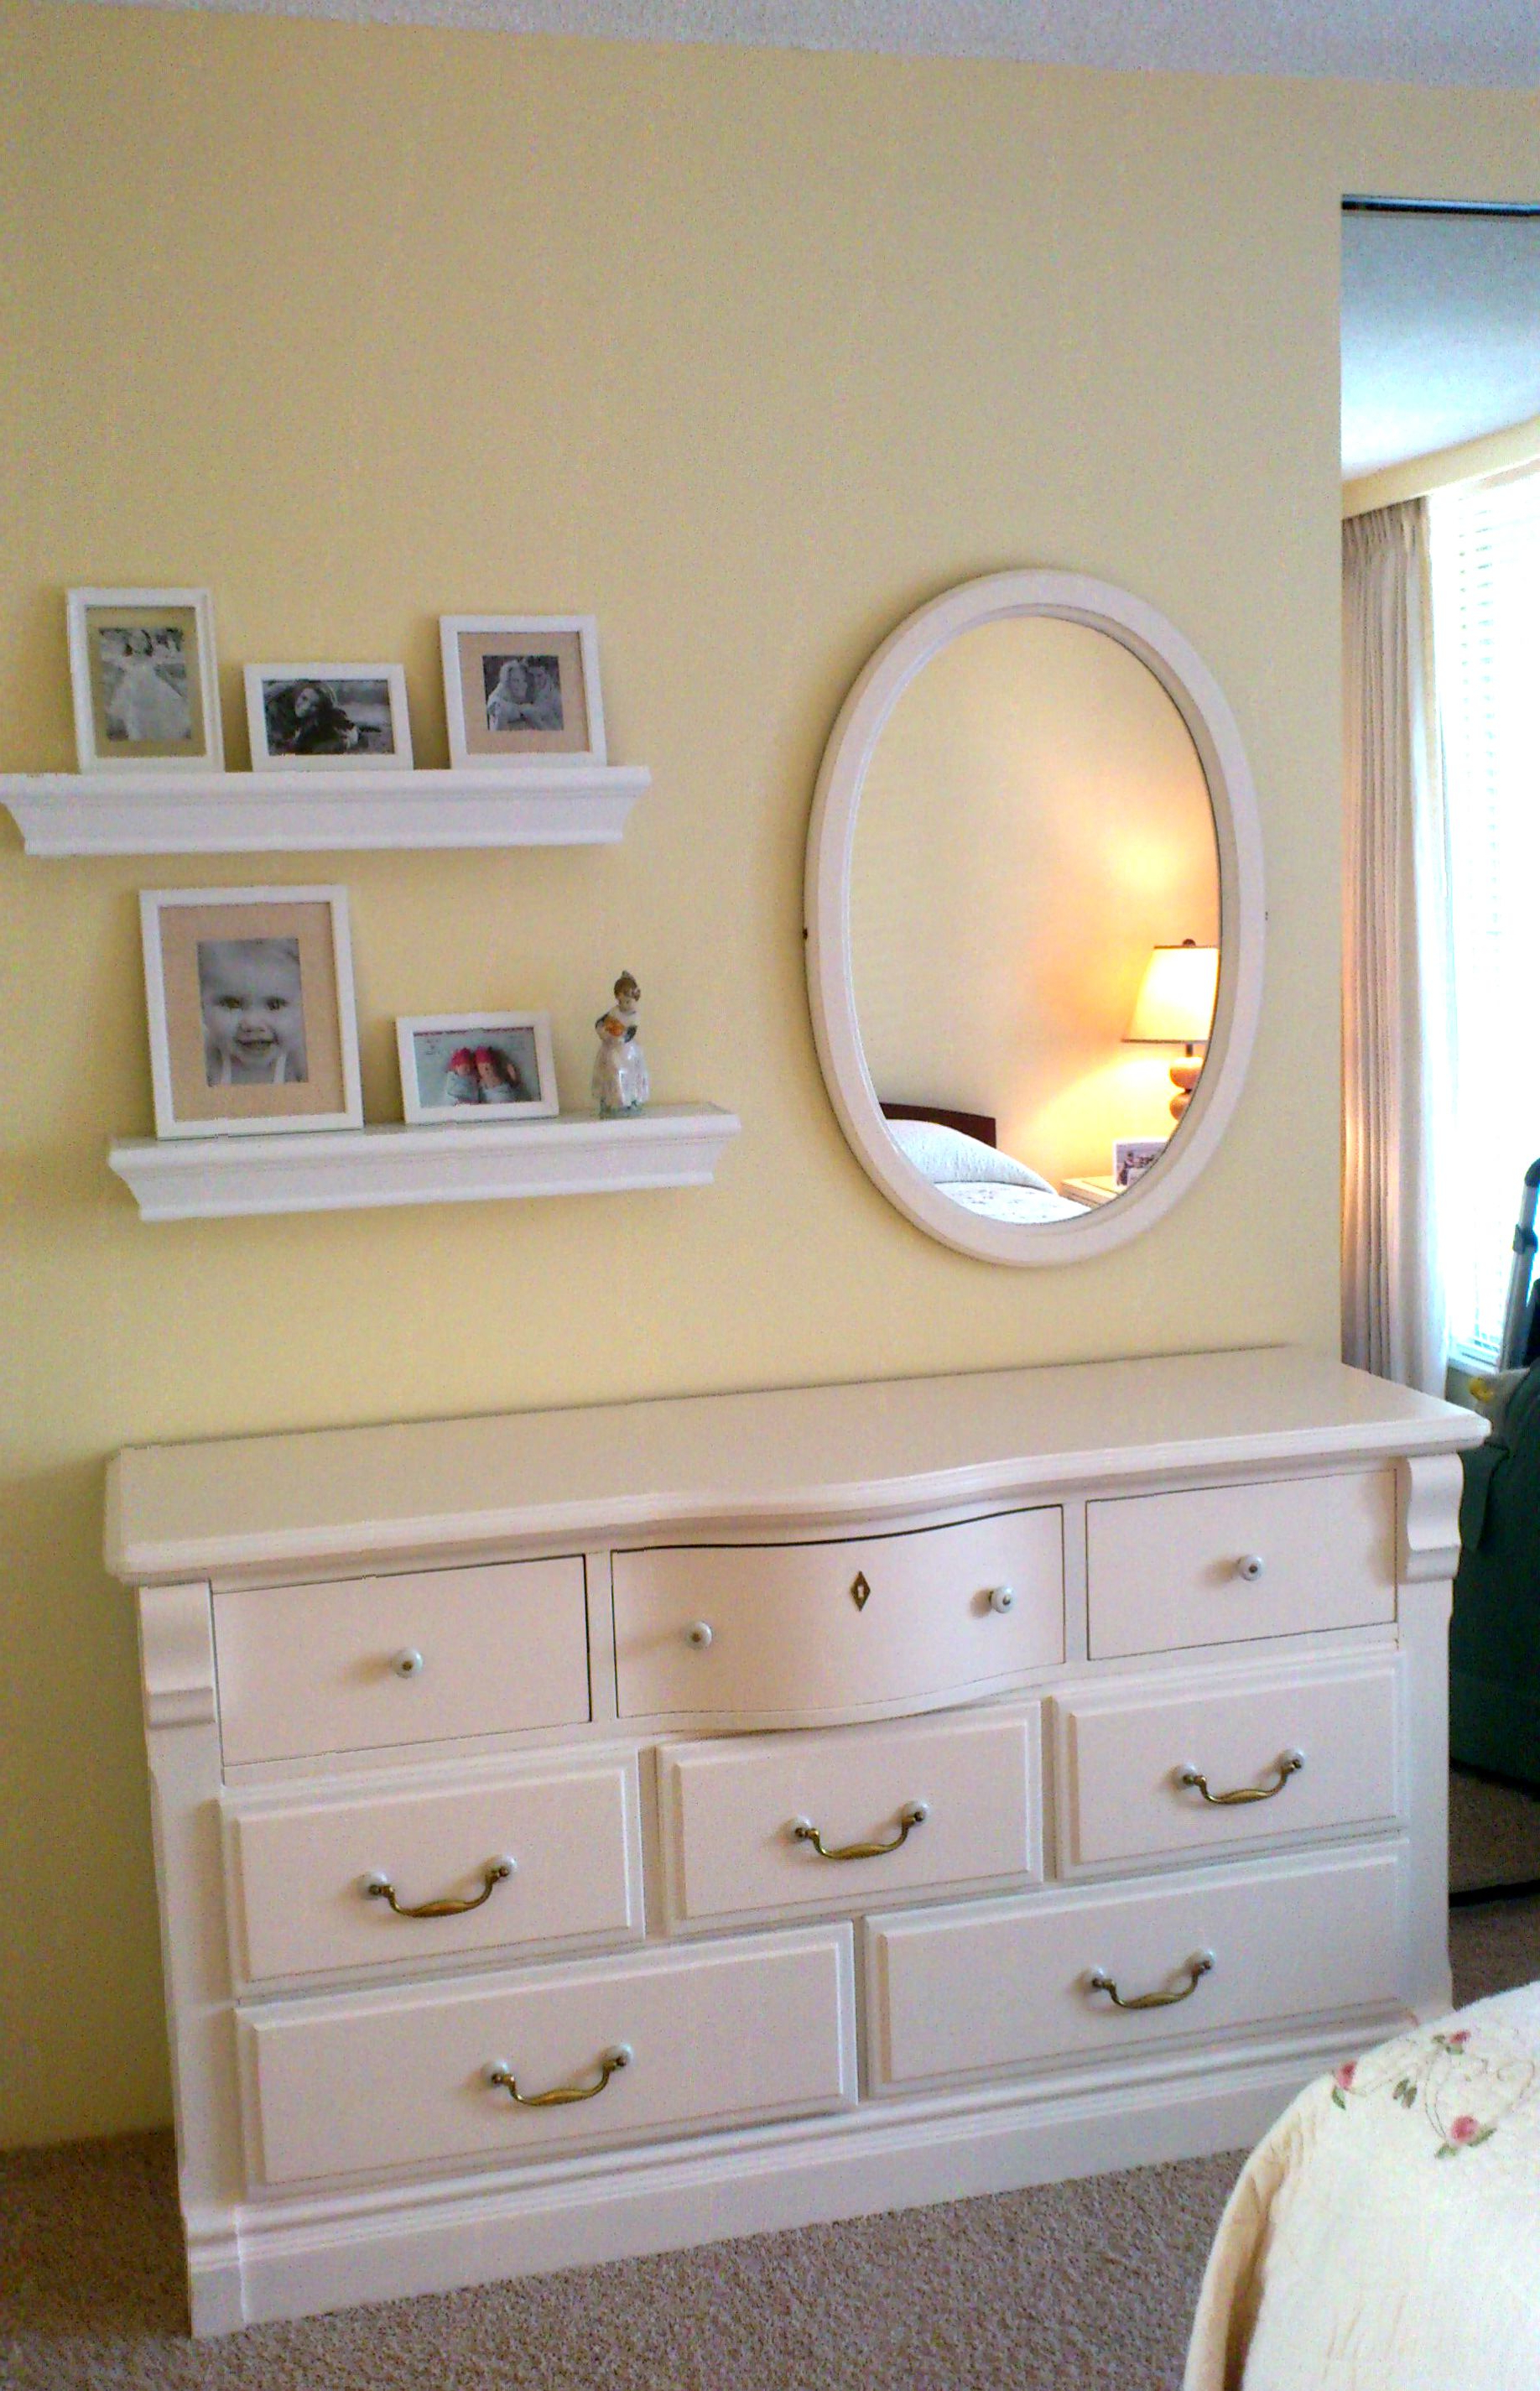 Target In Baby Wall Mirrors (View 7 of 20)